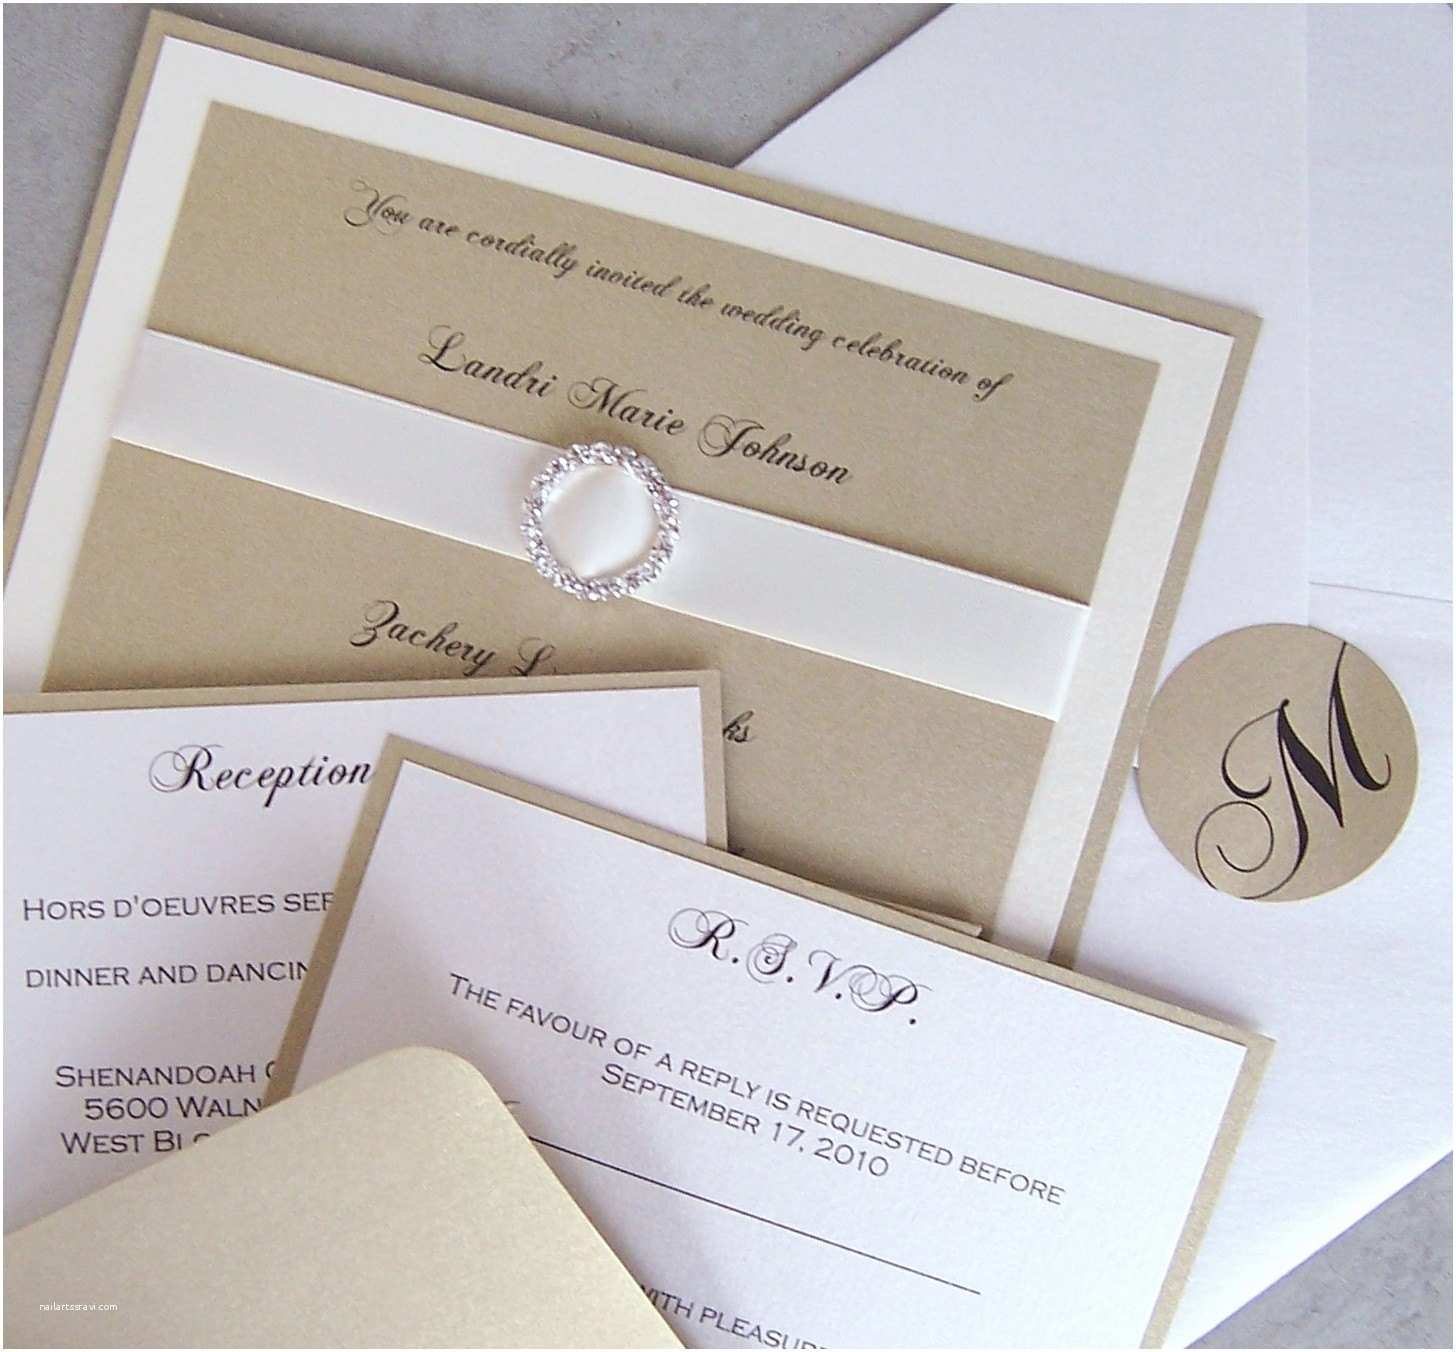 Ivory and Gold Wedding Invitations Elegant Wedding Invitation Gold Ivory Wedding Invitation